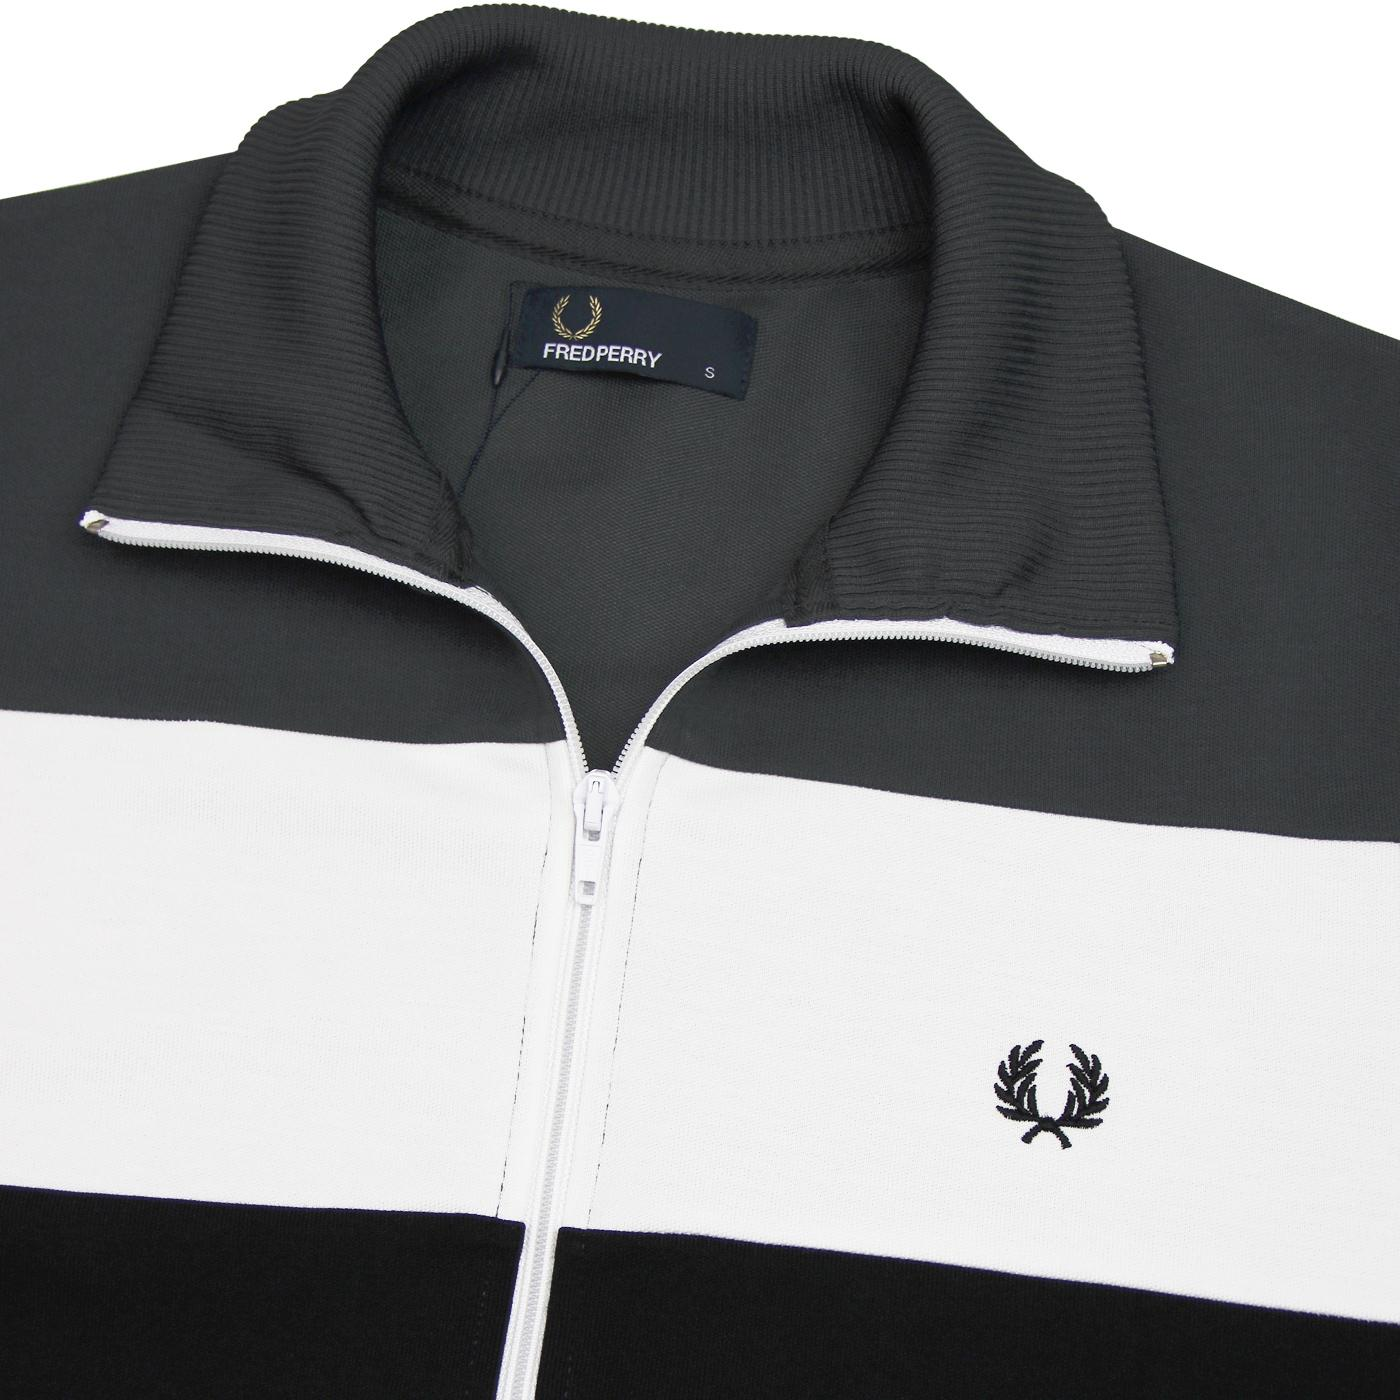 FRED PERRY Retro Colour Block Panel Track Jacket Charcoal